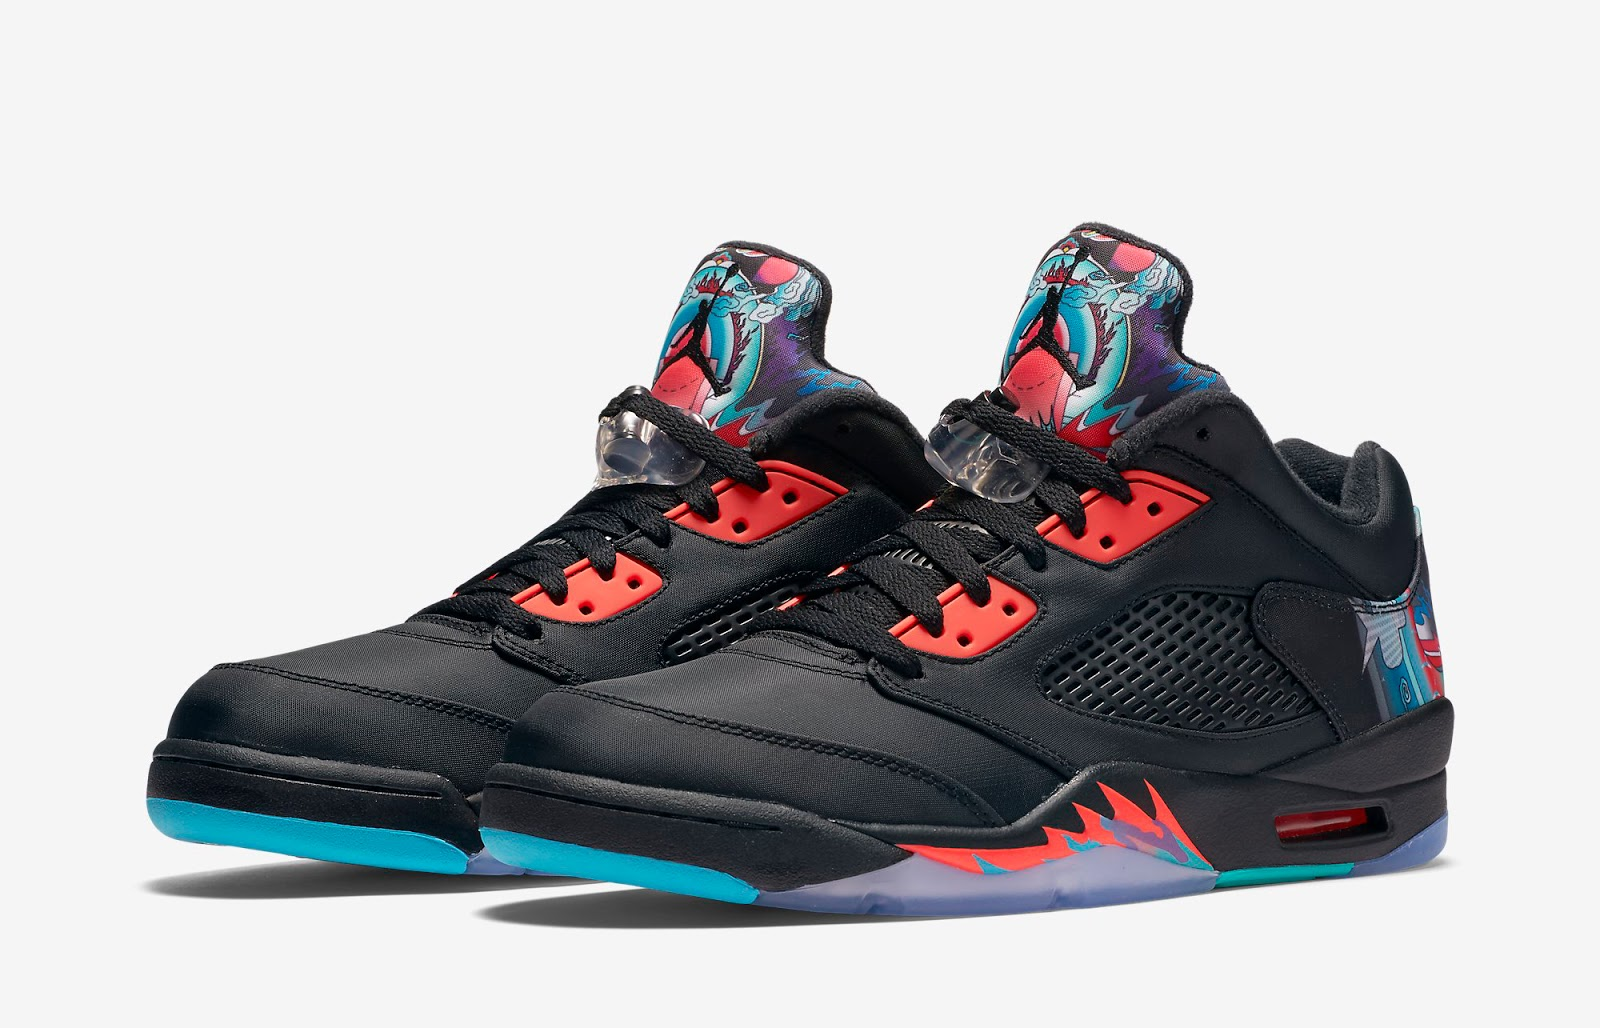 cf3eb14abcca42 Air Jordan 5 Retro Low CNY